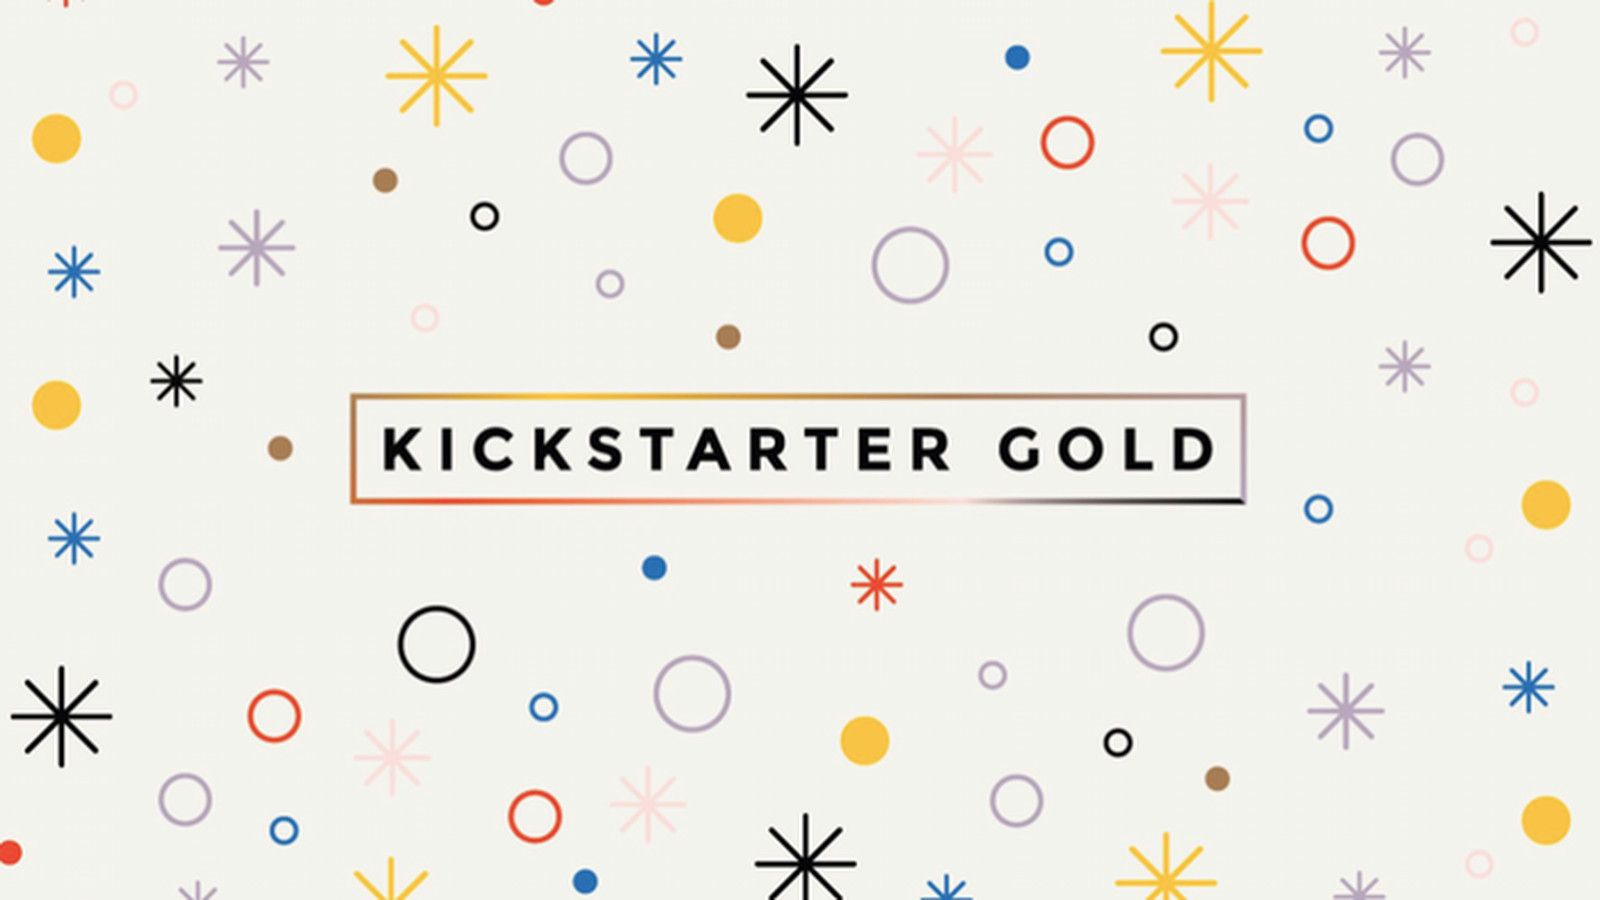 Kickstarter Gold brings back popular old projects with new spins